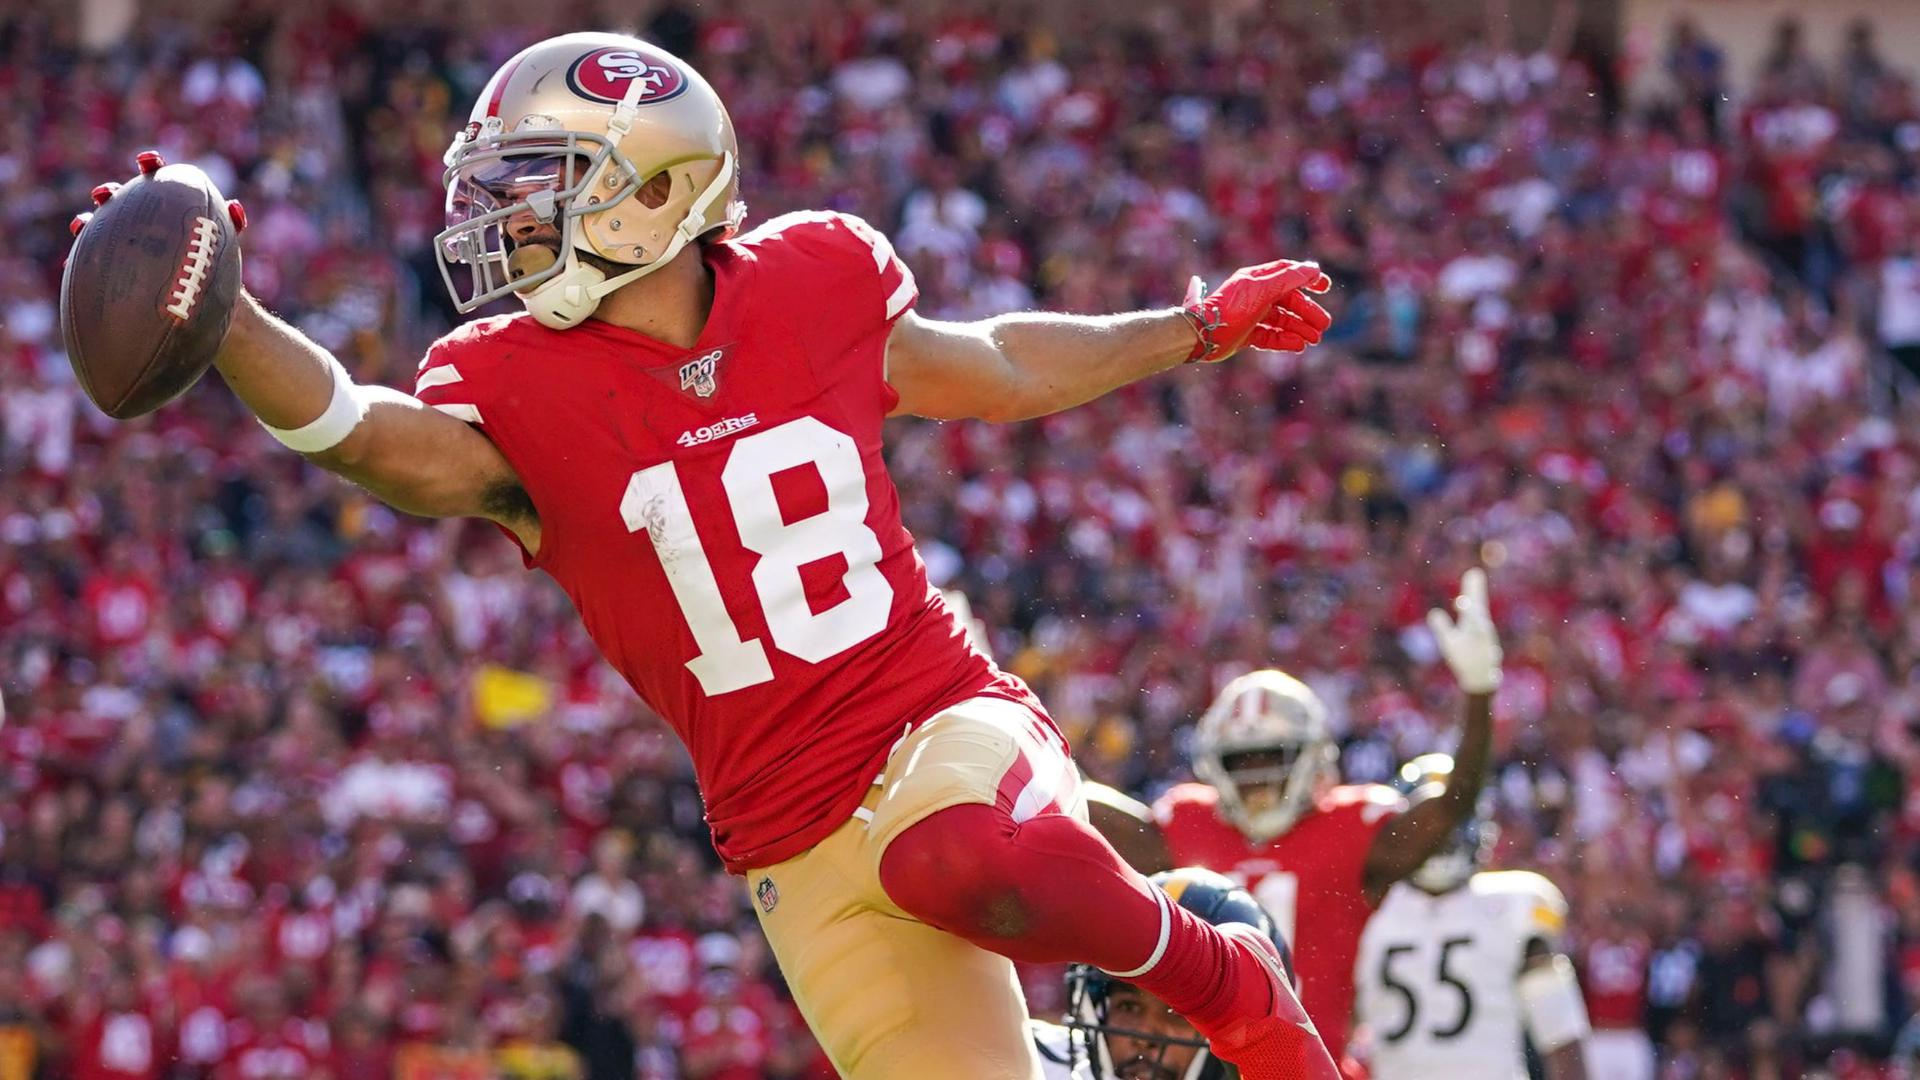 buy popular 6fcb2 7c9a7 Sloppy 49ers beat Steelers 24-20 on late Garoppolo TD pass ...